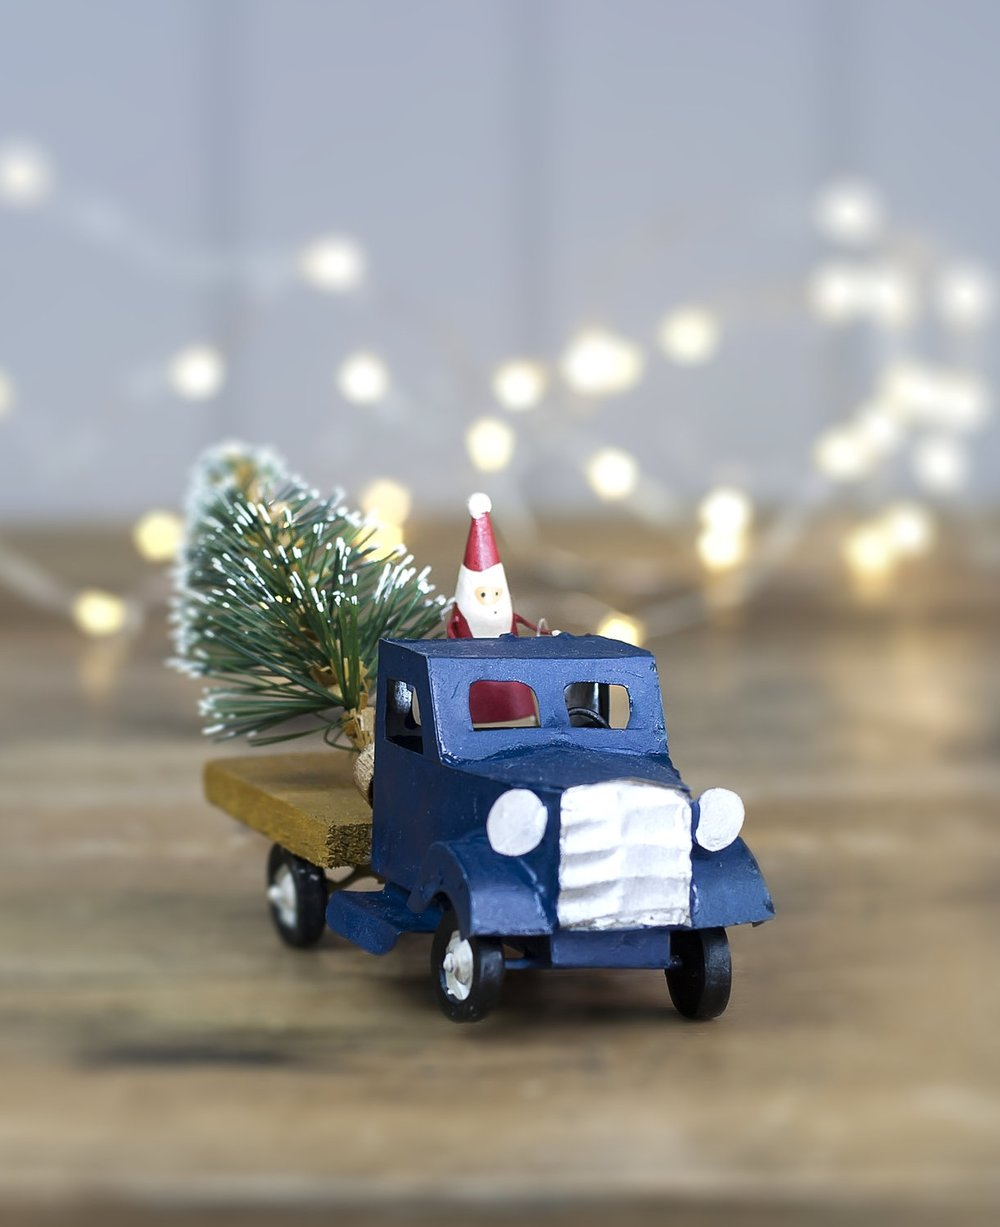 toy truck with Santa driving and a Christmas tree on the back